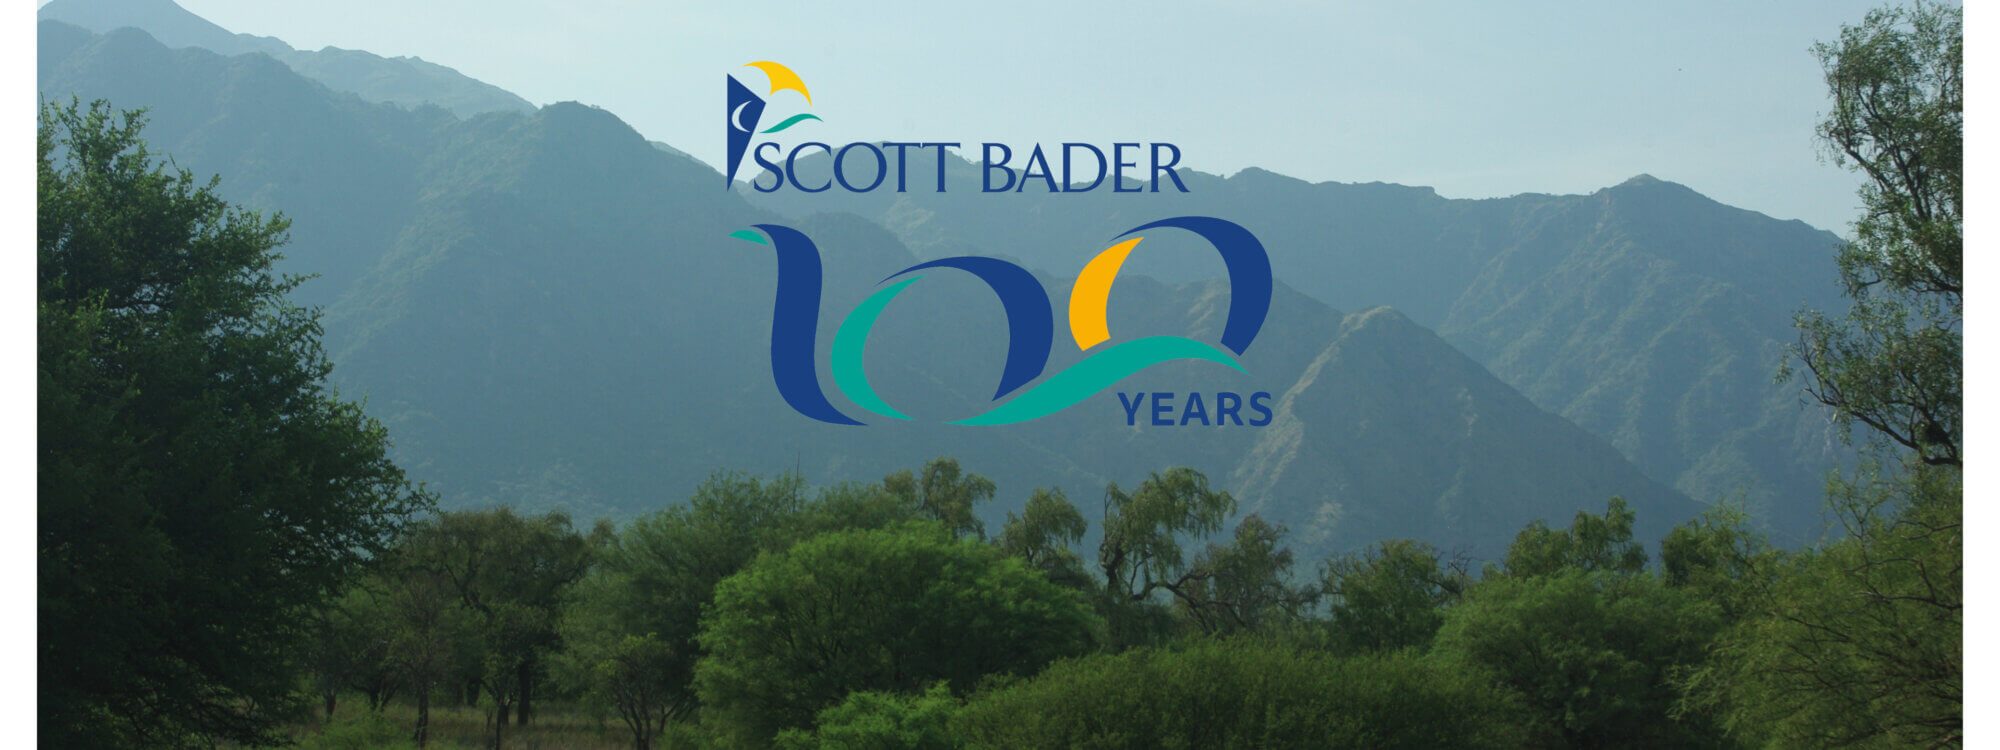 Scott Bader supports the World Land Trust's Buy an Acre Programme